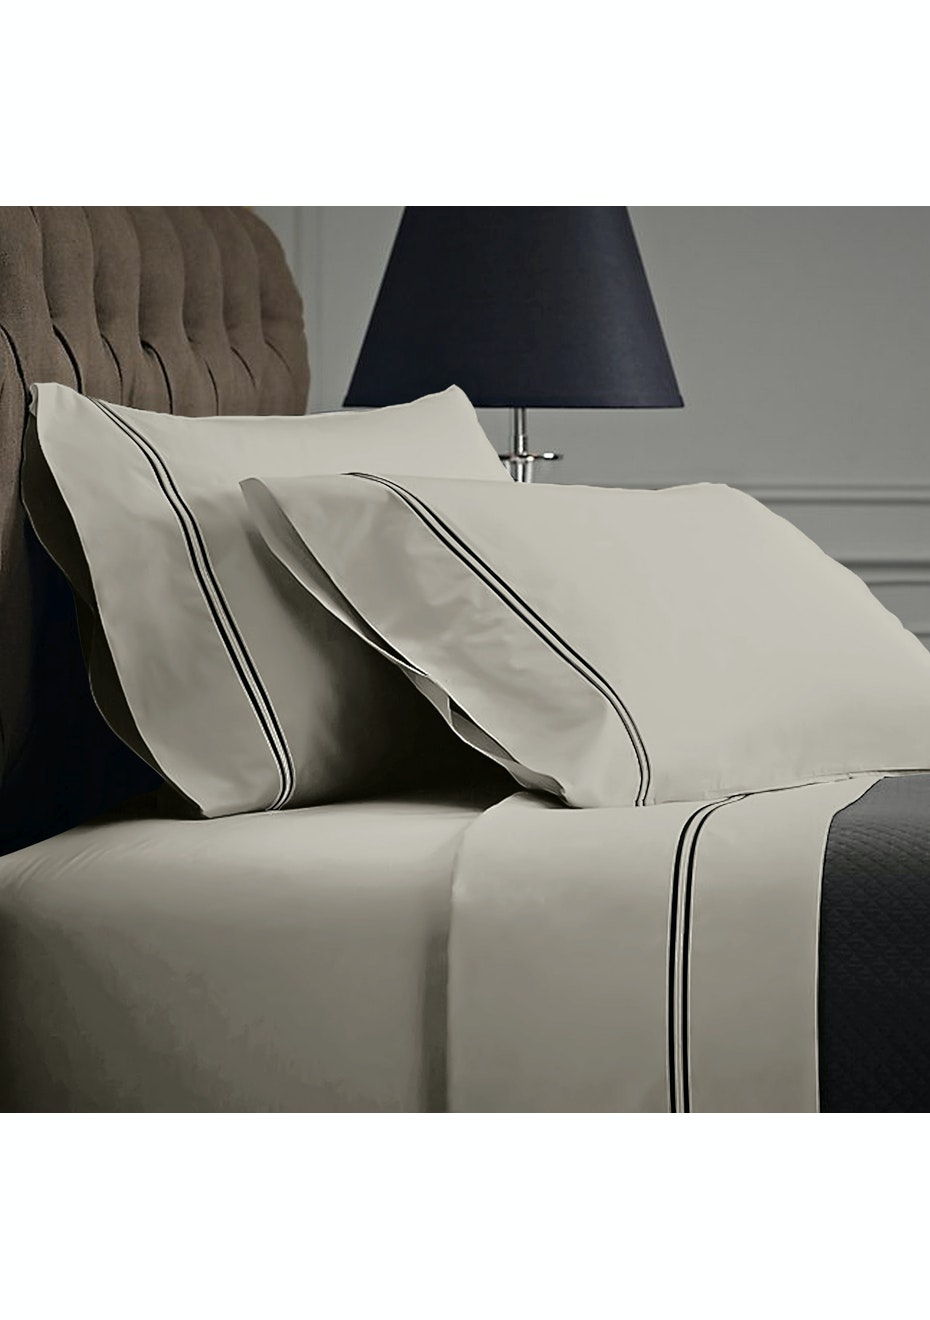 Style & Co 1000 Thread count Egyptian Cotton Hotel Collection Sorrento Sheet sets Queen Silver